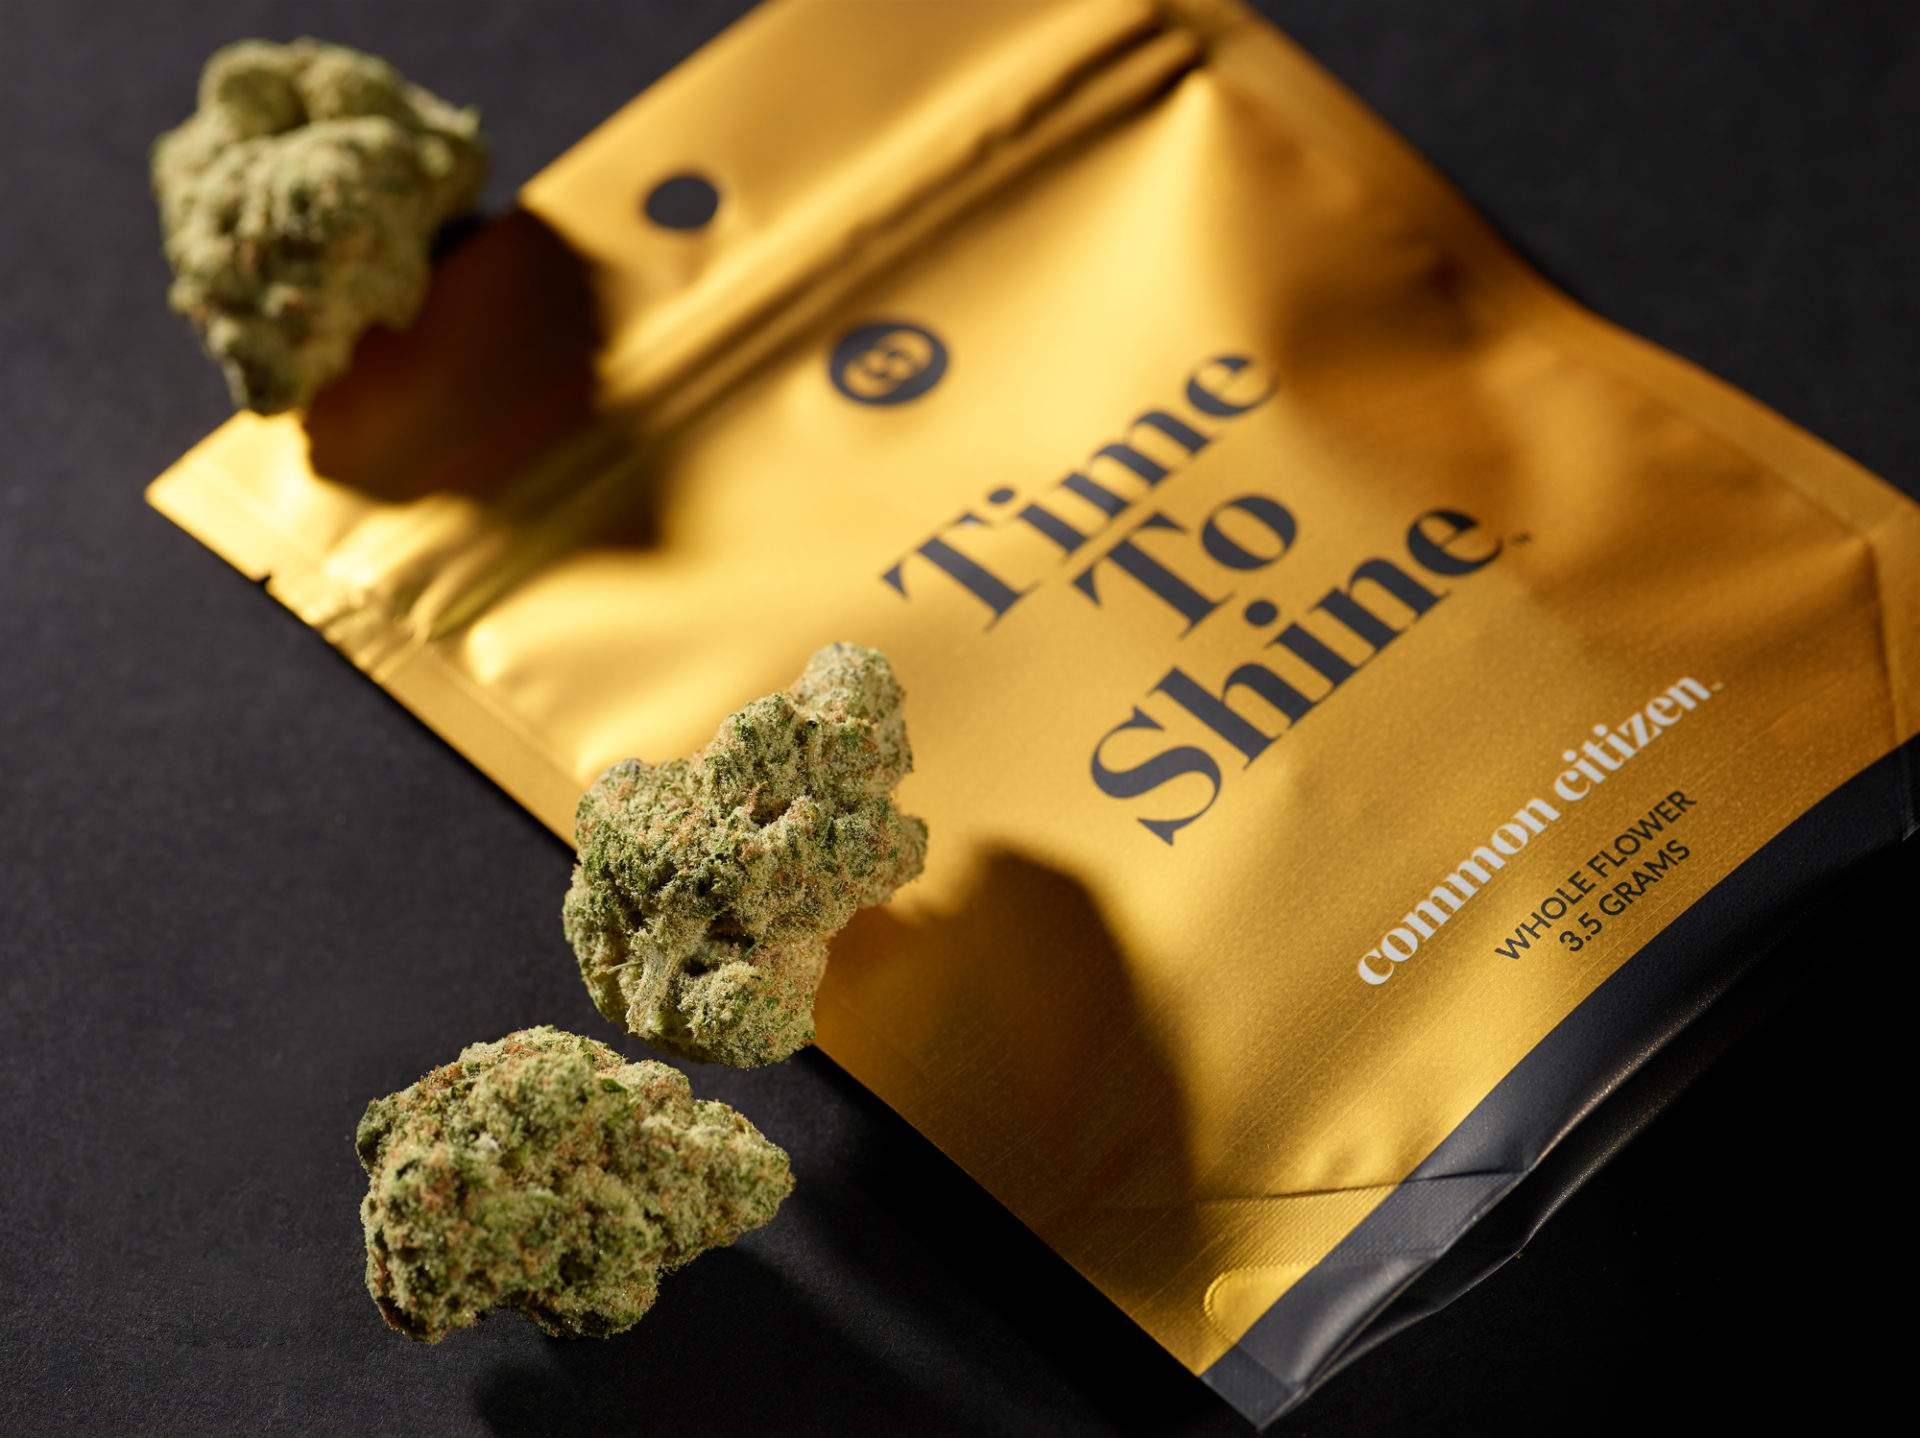 Cannabis Product Photography for Advertising - by Hollis Conway Photography